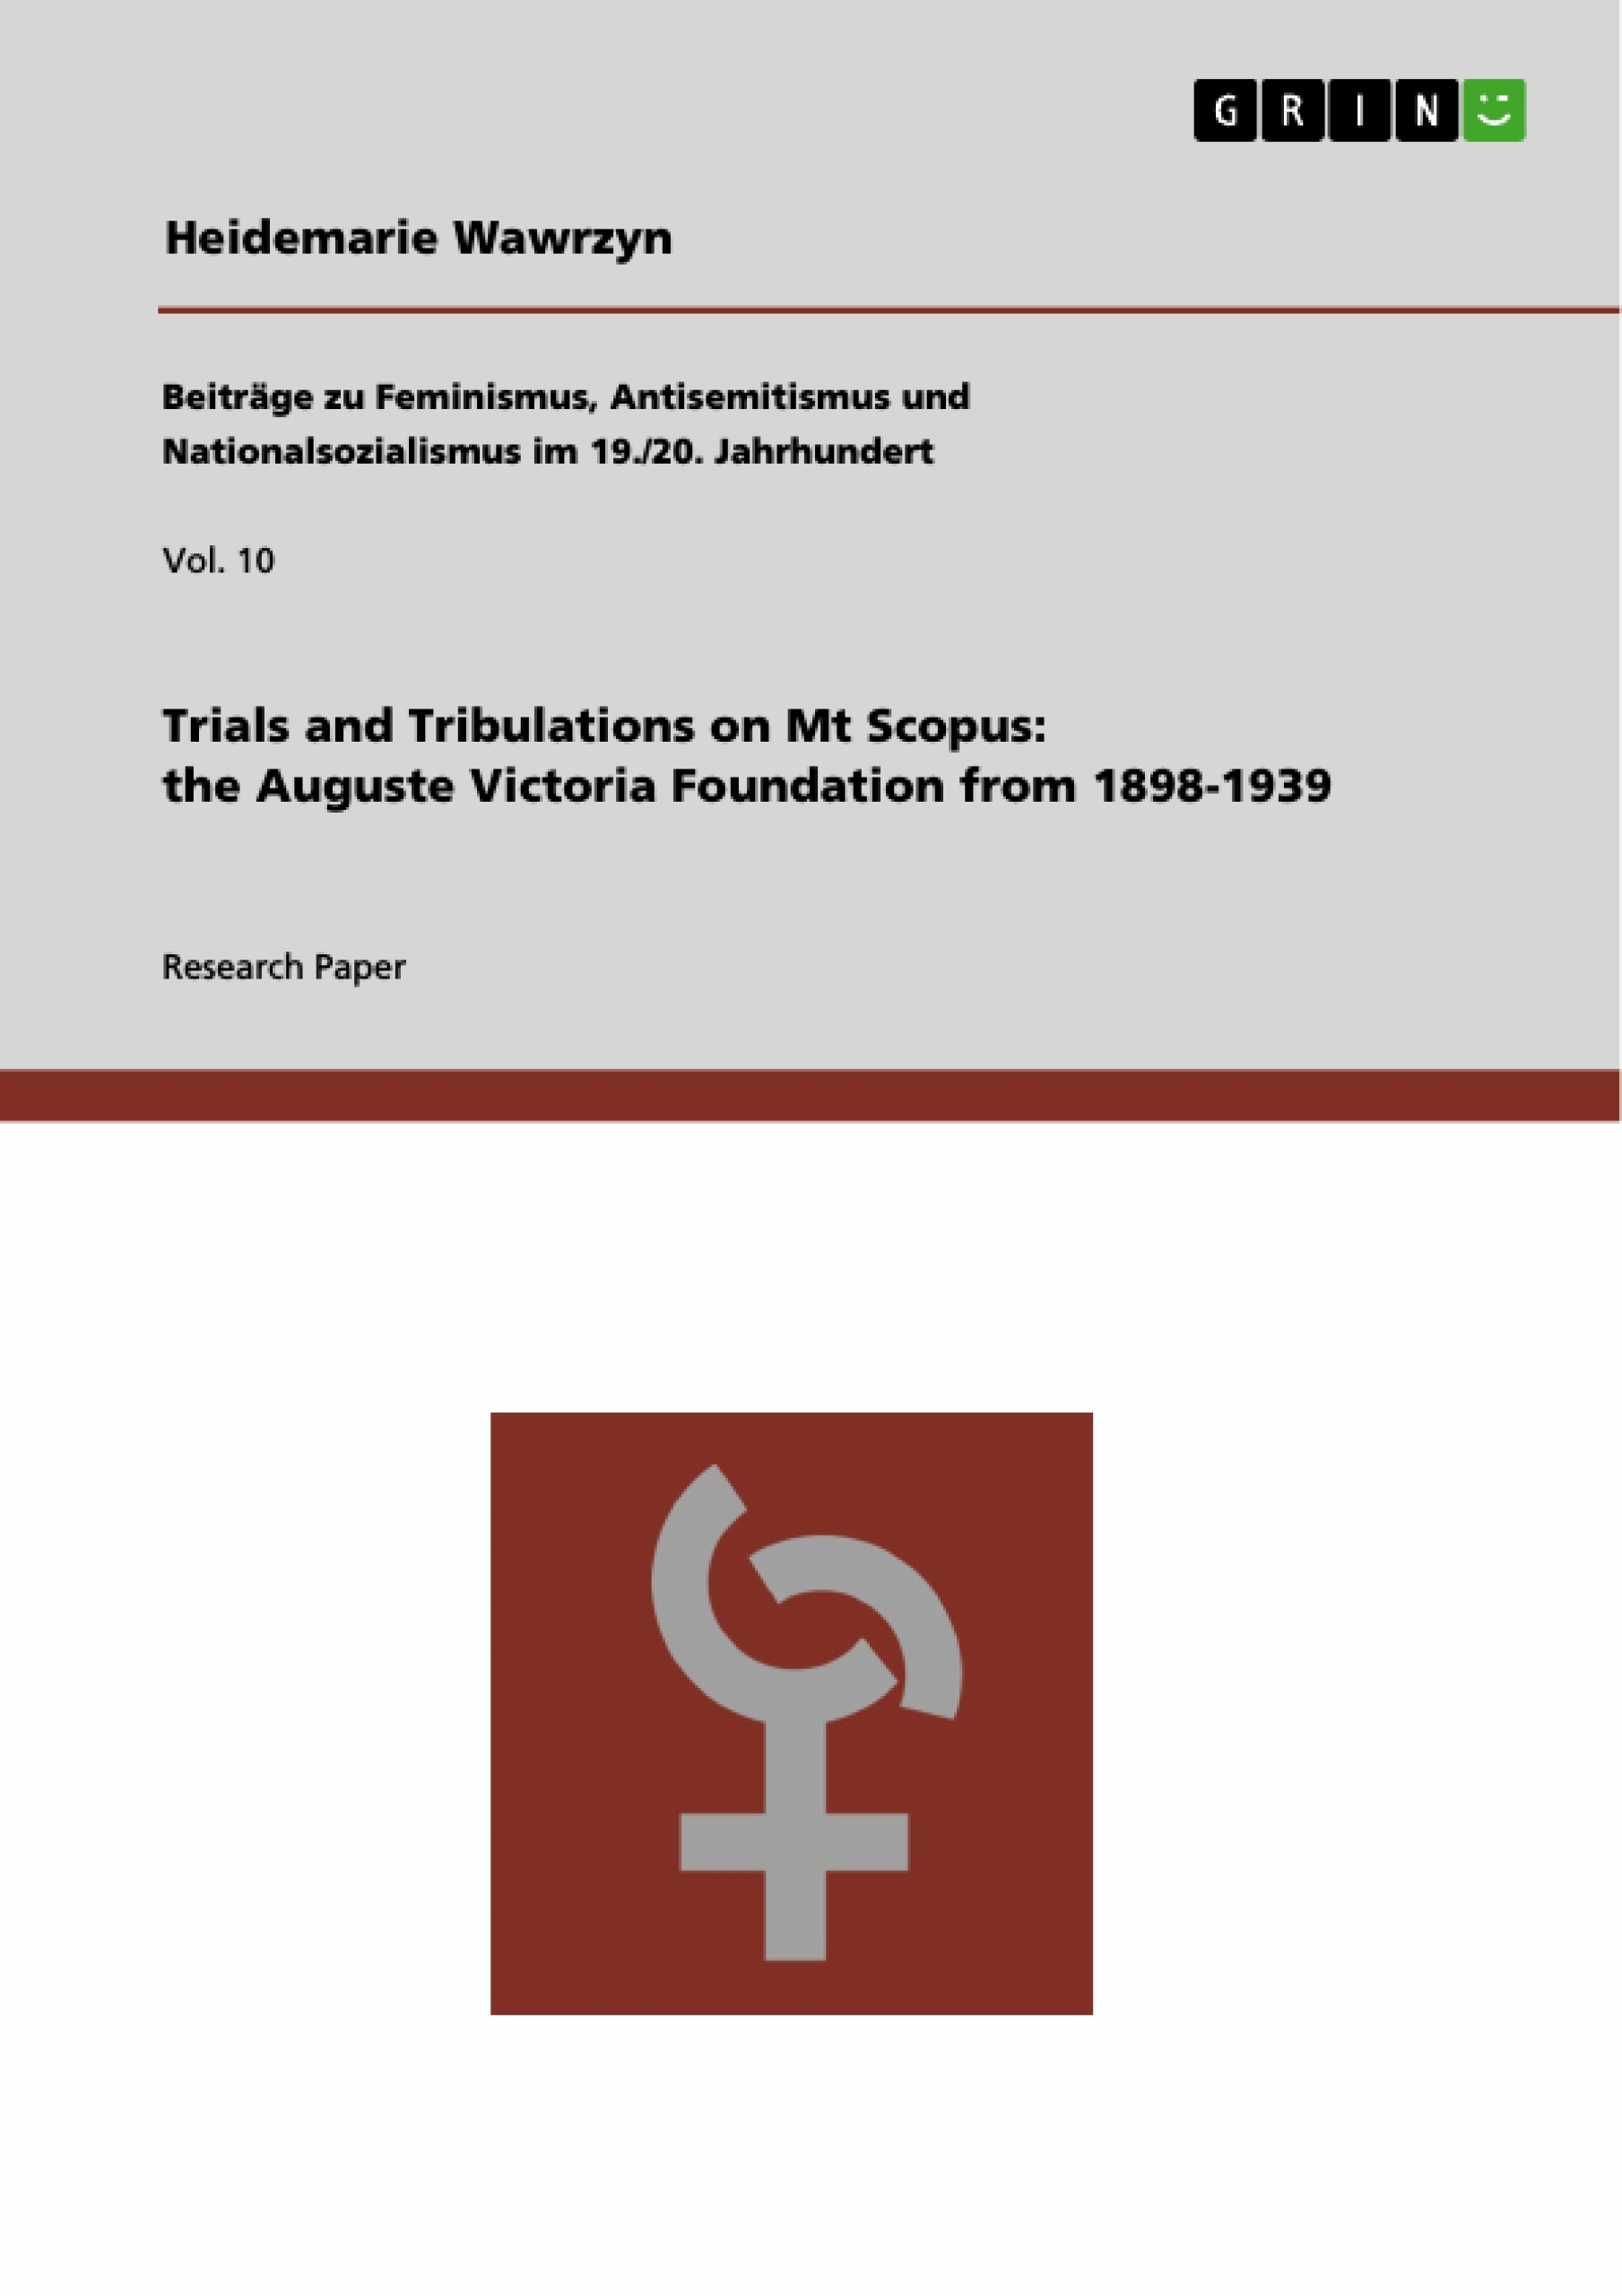 Title: Trials and Tribulations on Mt Scopus: the Auguste Victoria Foundation from 1898-1939